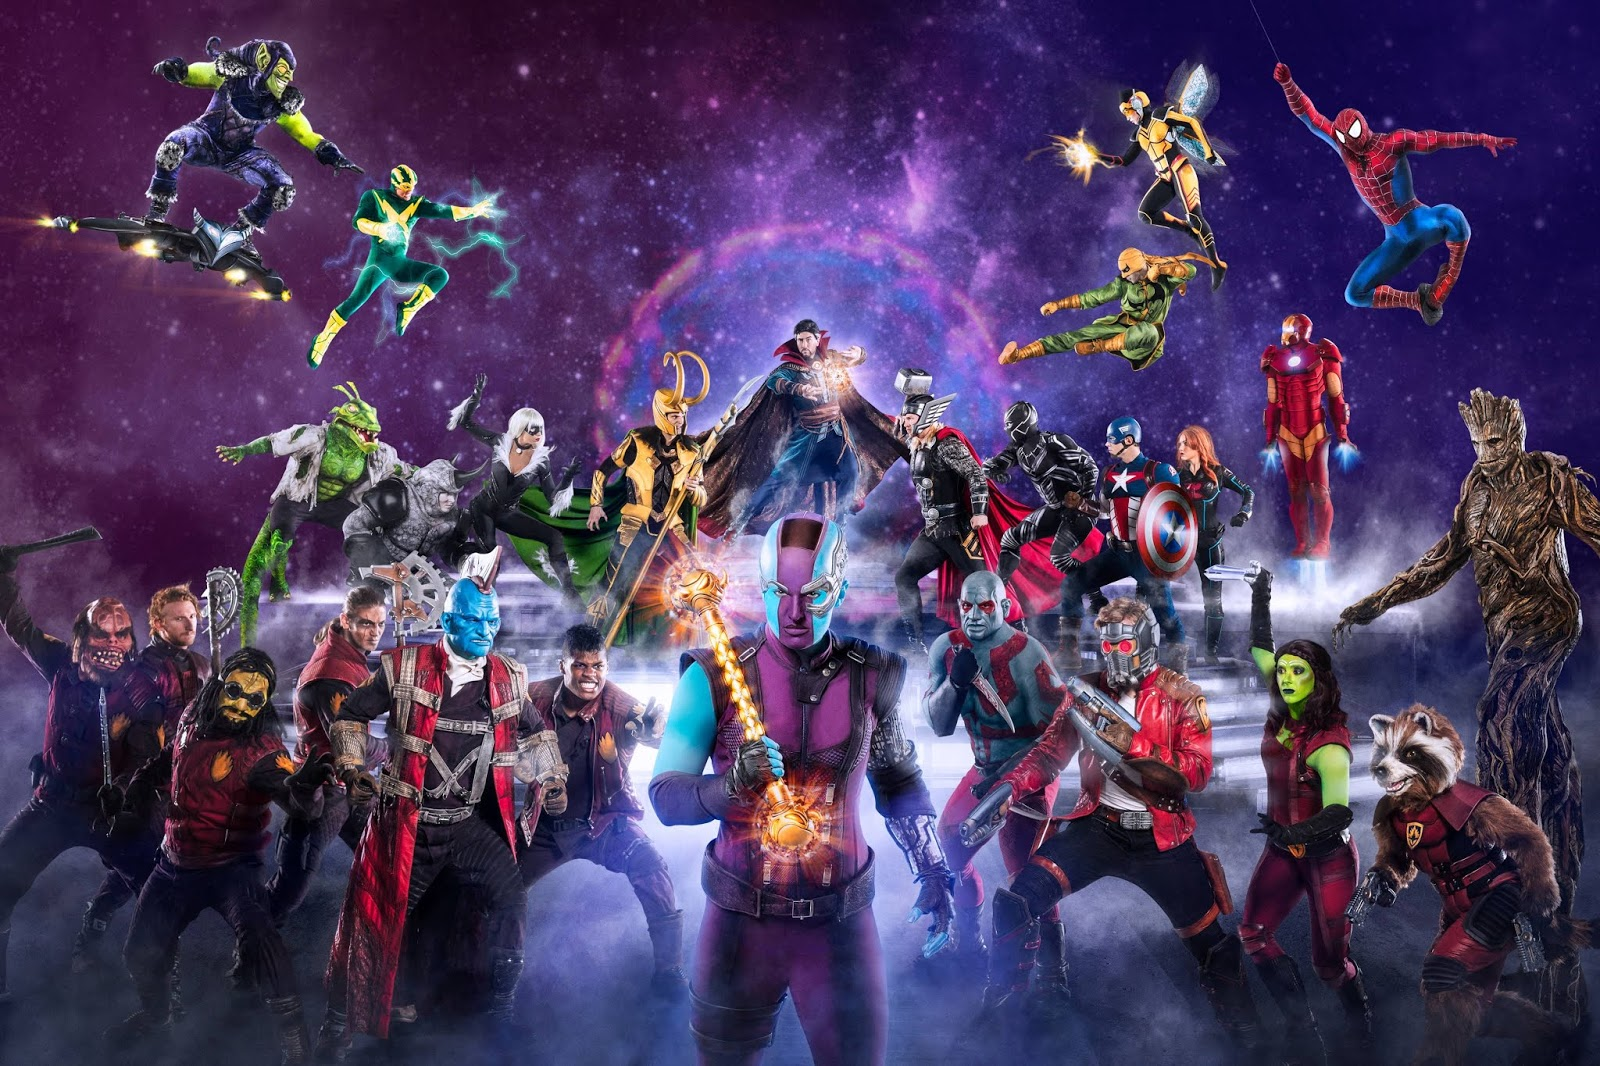 PHOTO: Marvel Heroes face off agains the villains.Marvel Universe LIVE! will visit Newcastle in 2019 - here's how to sign-up for priority tickets